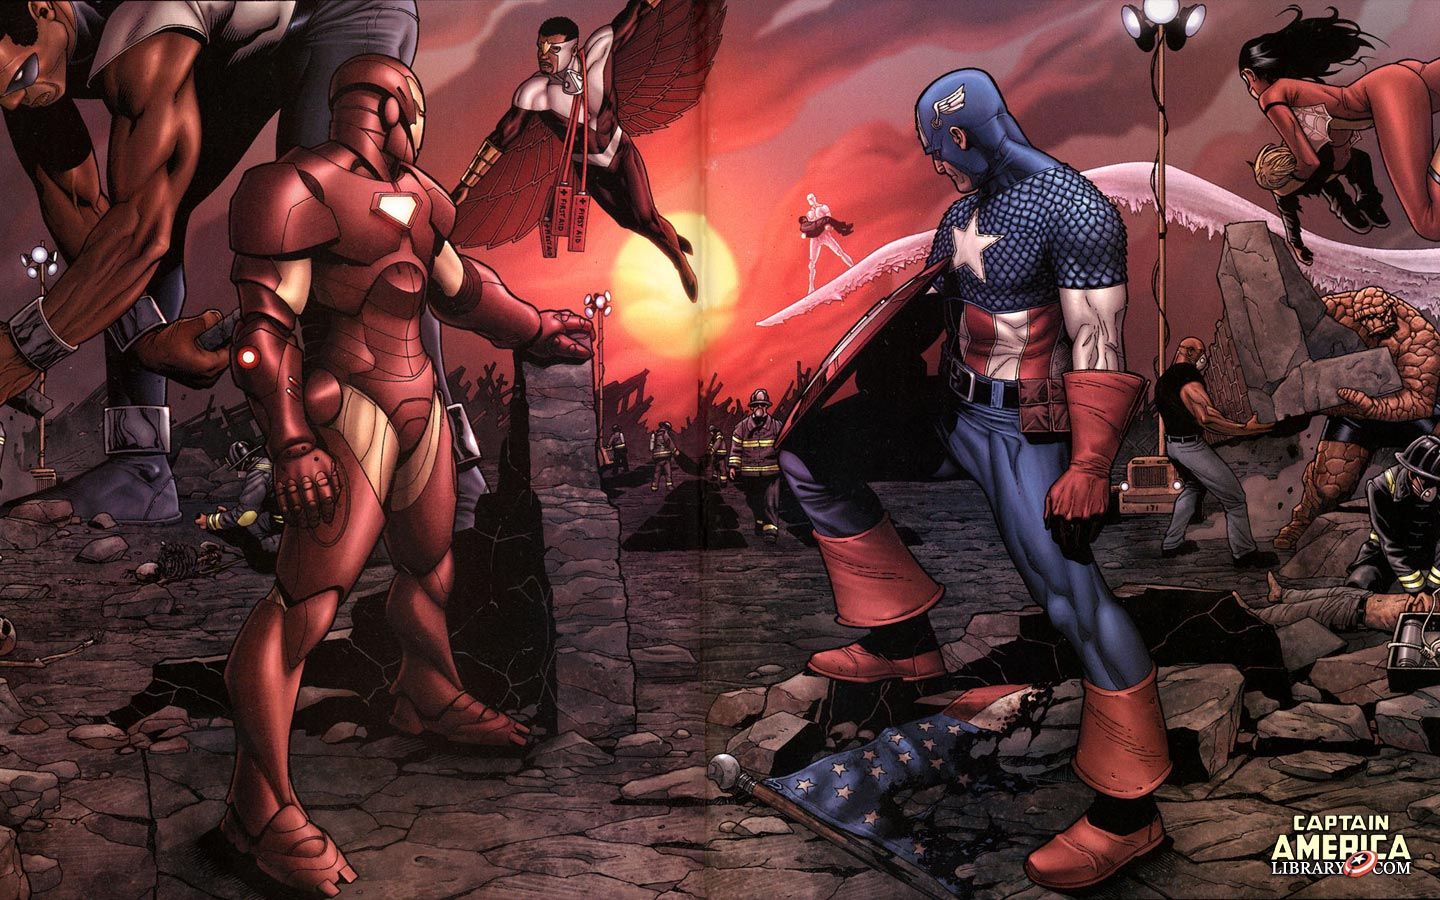 Captain America Wallpapers Image Gallery   HD wallpapers 1080p 1440x900